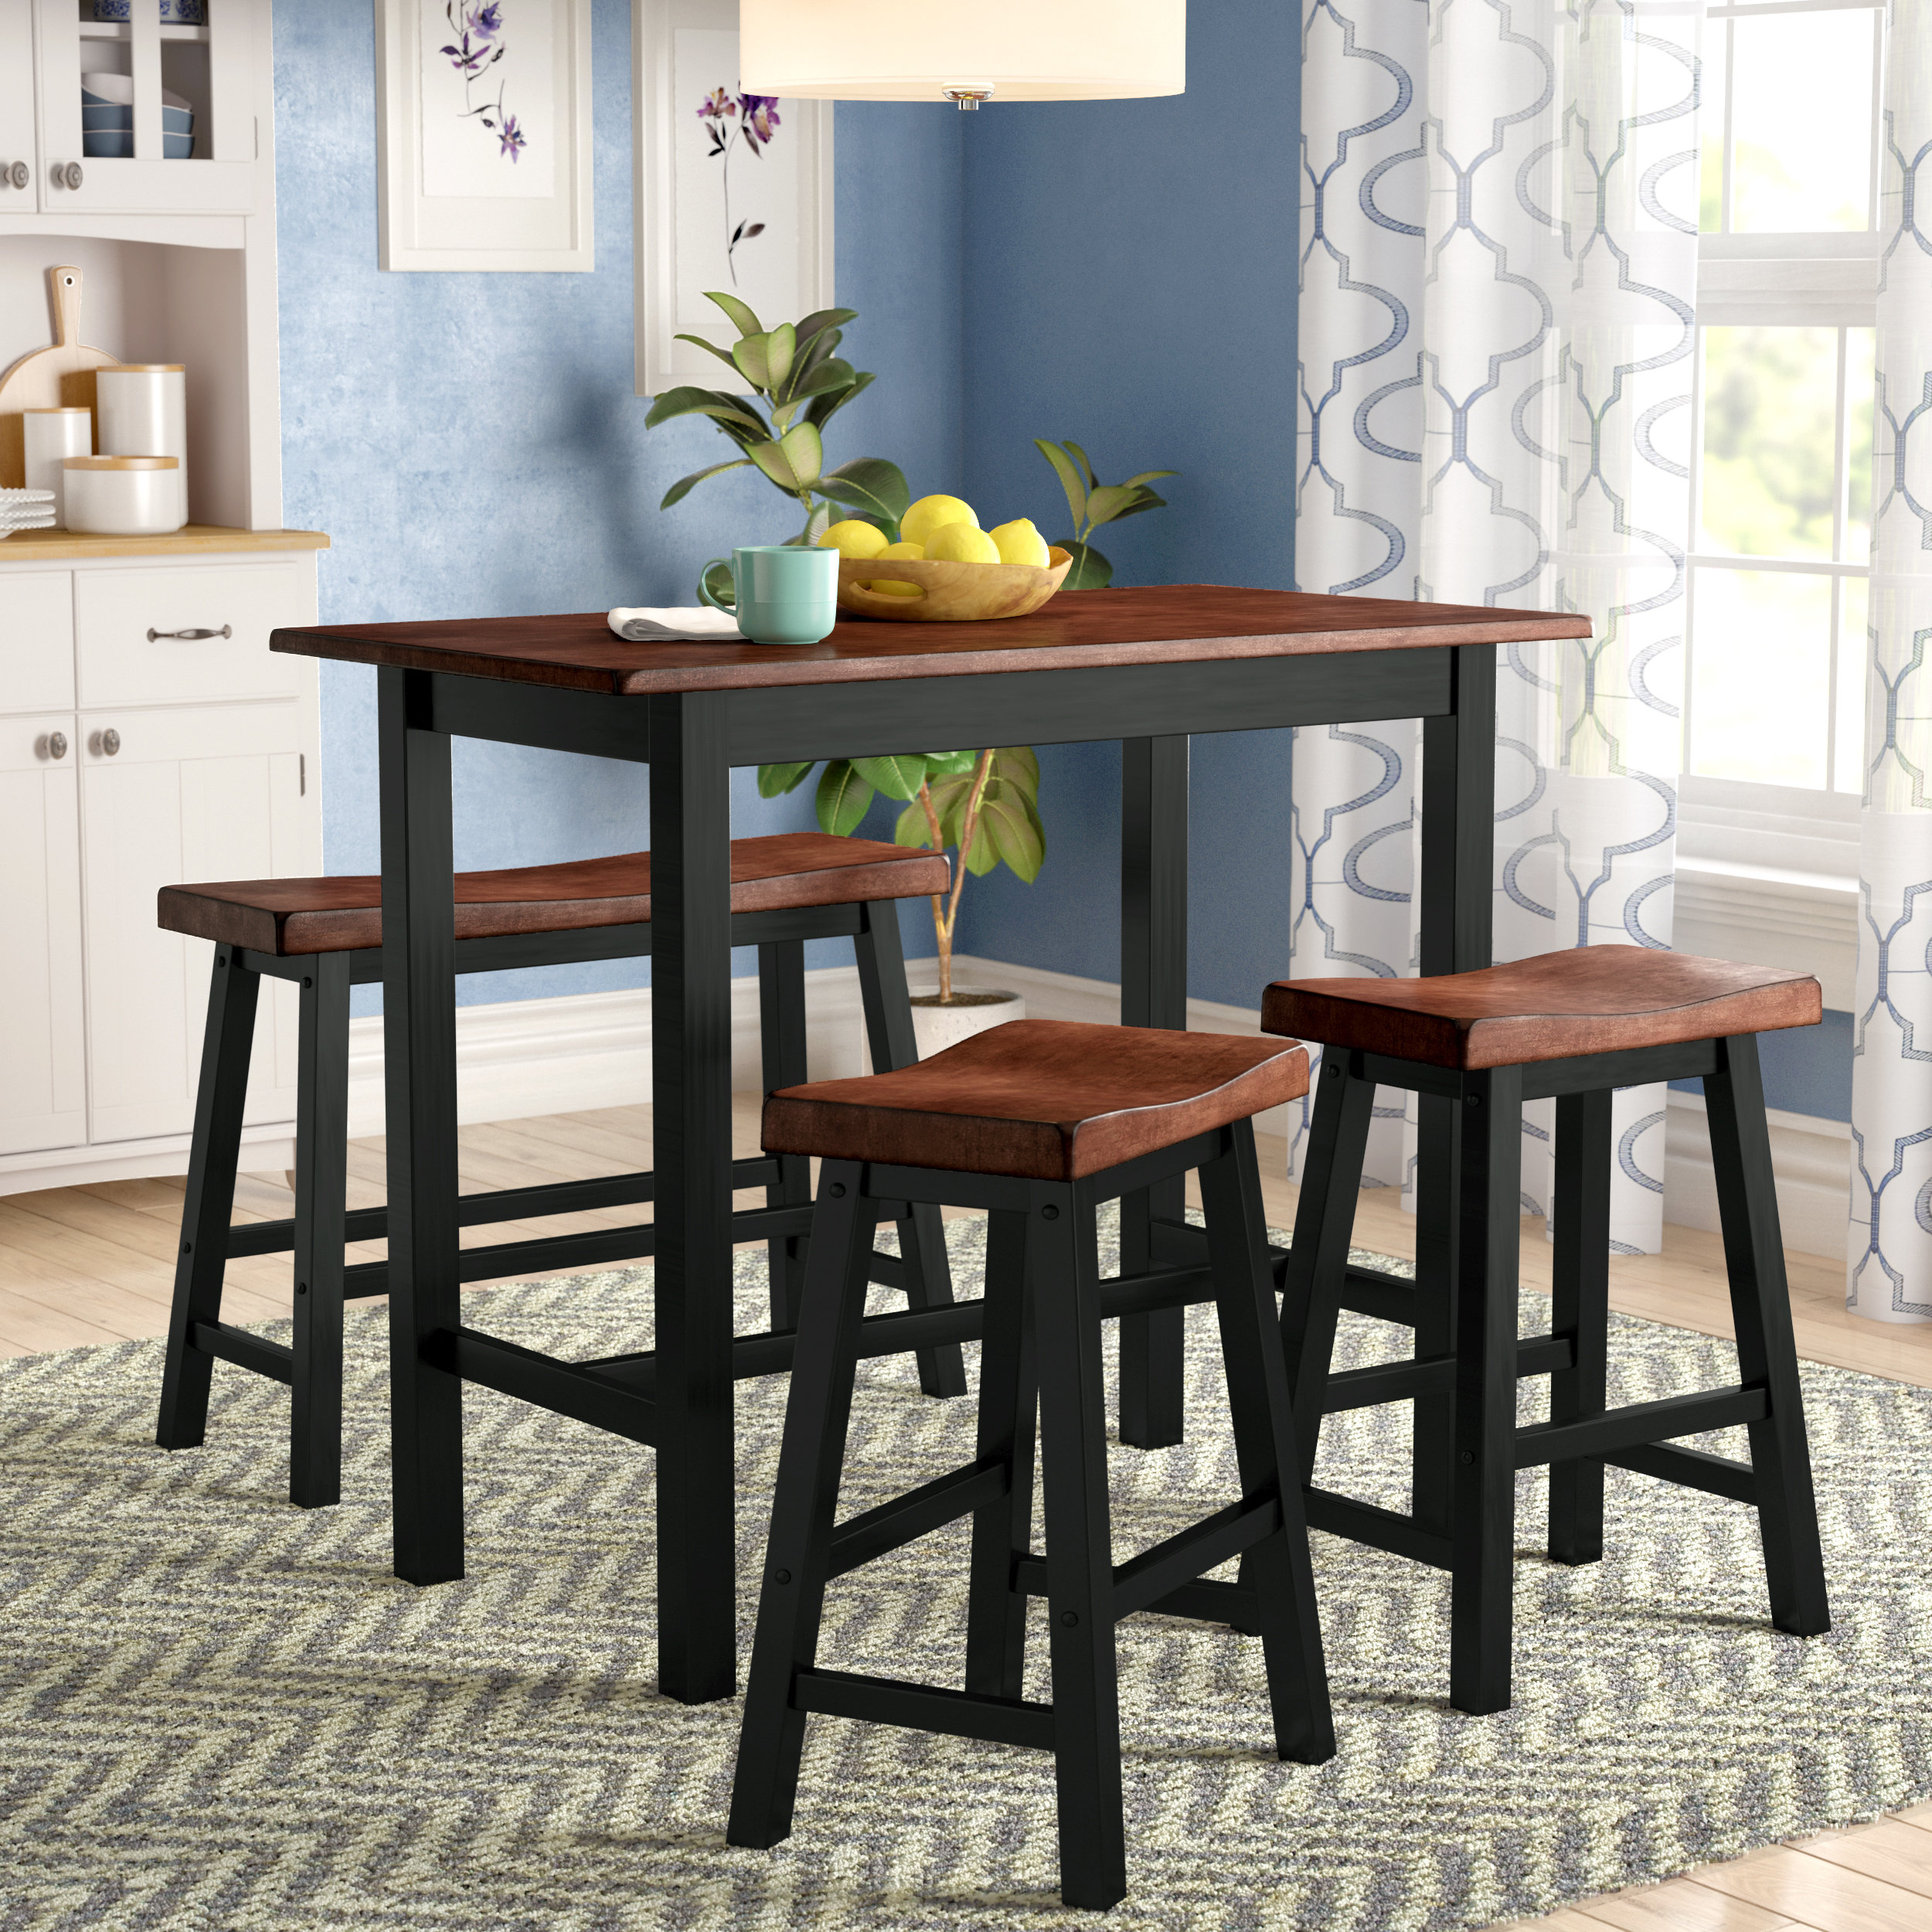 Winsted 4 Piece Counter Height Dining Set With Best And Newest Berrios 3 Piece Counter Height Dining Sets (View 8 of 20)